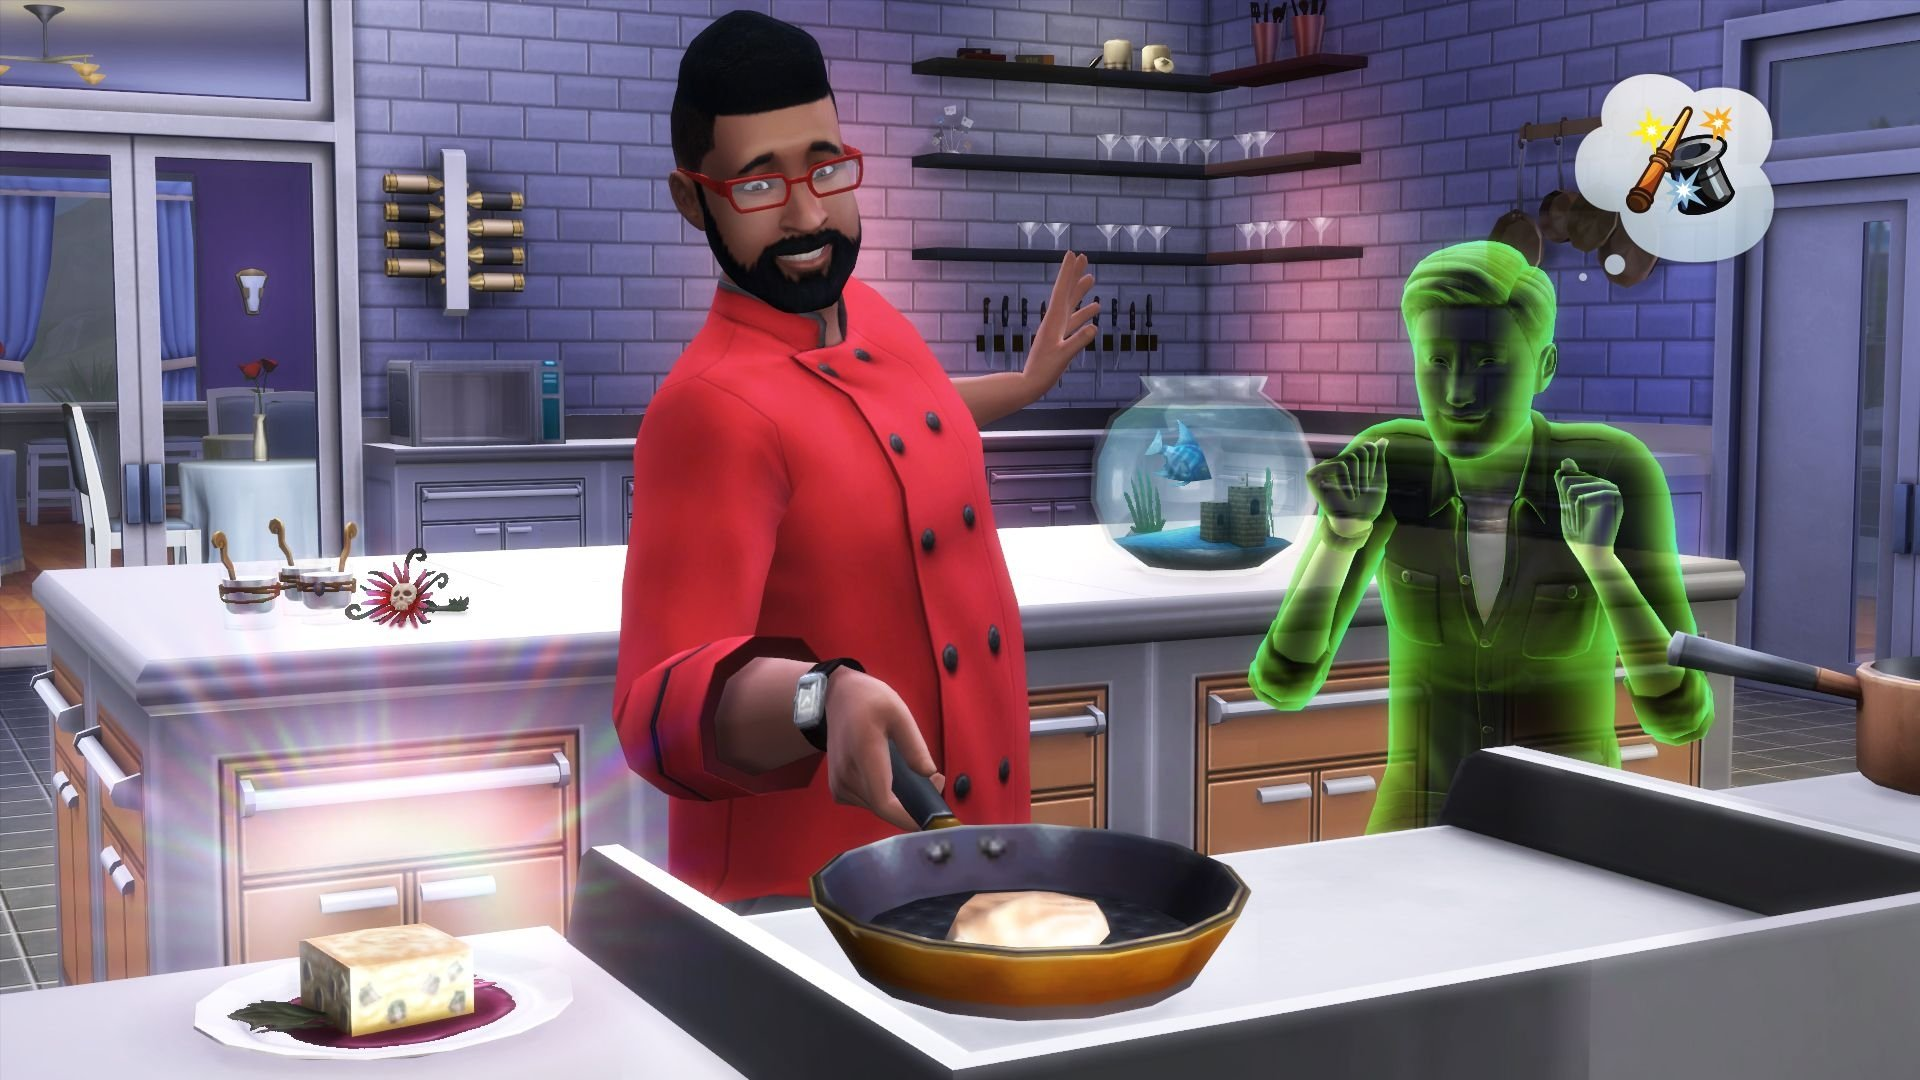 The Sims 4 - Download for PC Free